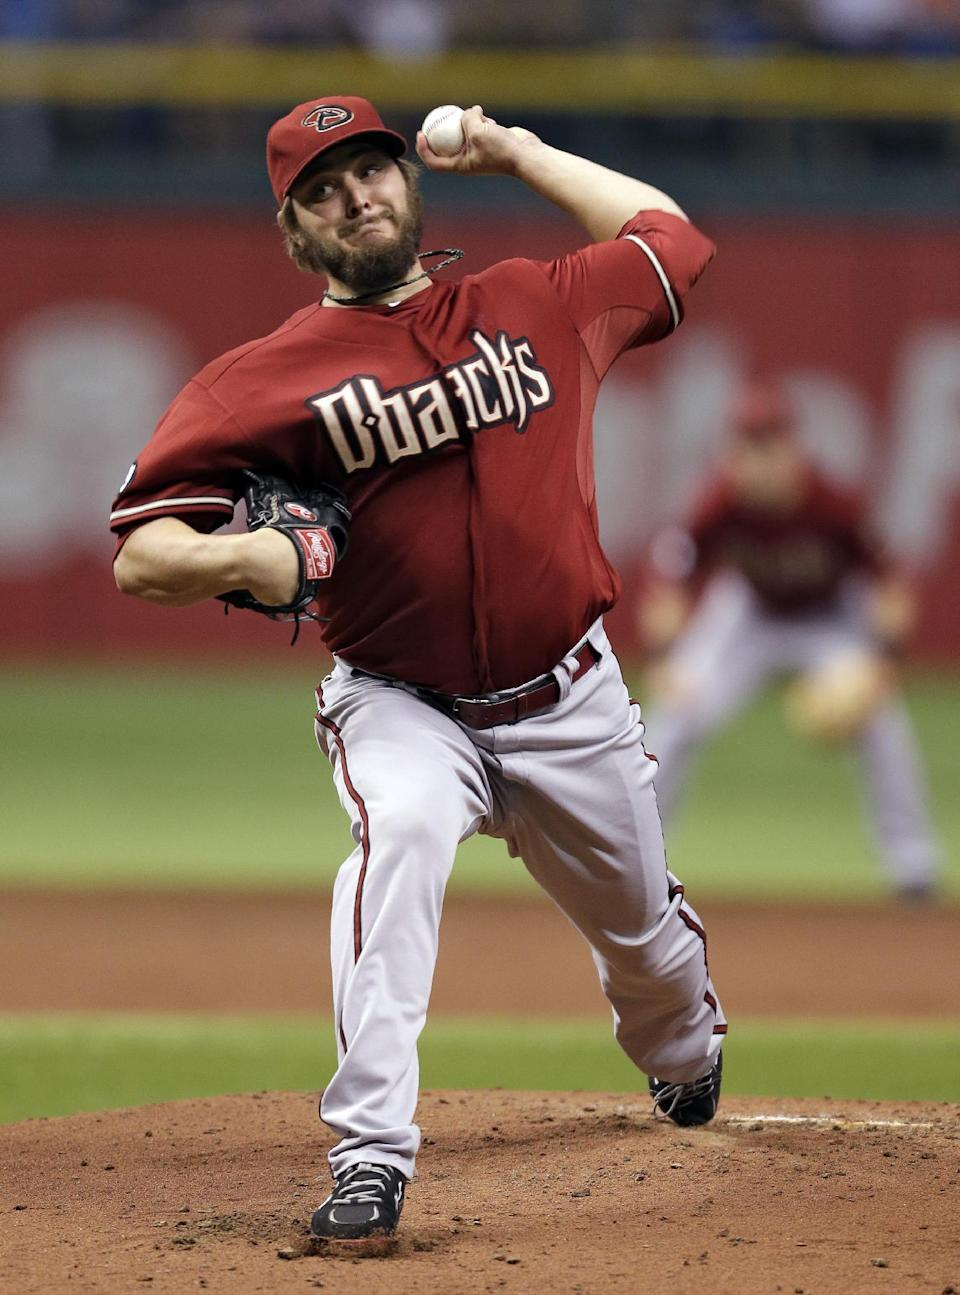 Arizona Diamondbacks starting pitcher Wade Miley delivers to Tampa Bay Rays' Desmond Jennings during the first inning of an interleague baseball game on Wednesday, July 31, 2013, in St. Petersburg, Fla. (AP Photo/Chris O'Meara)